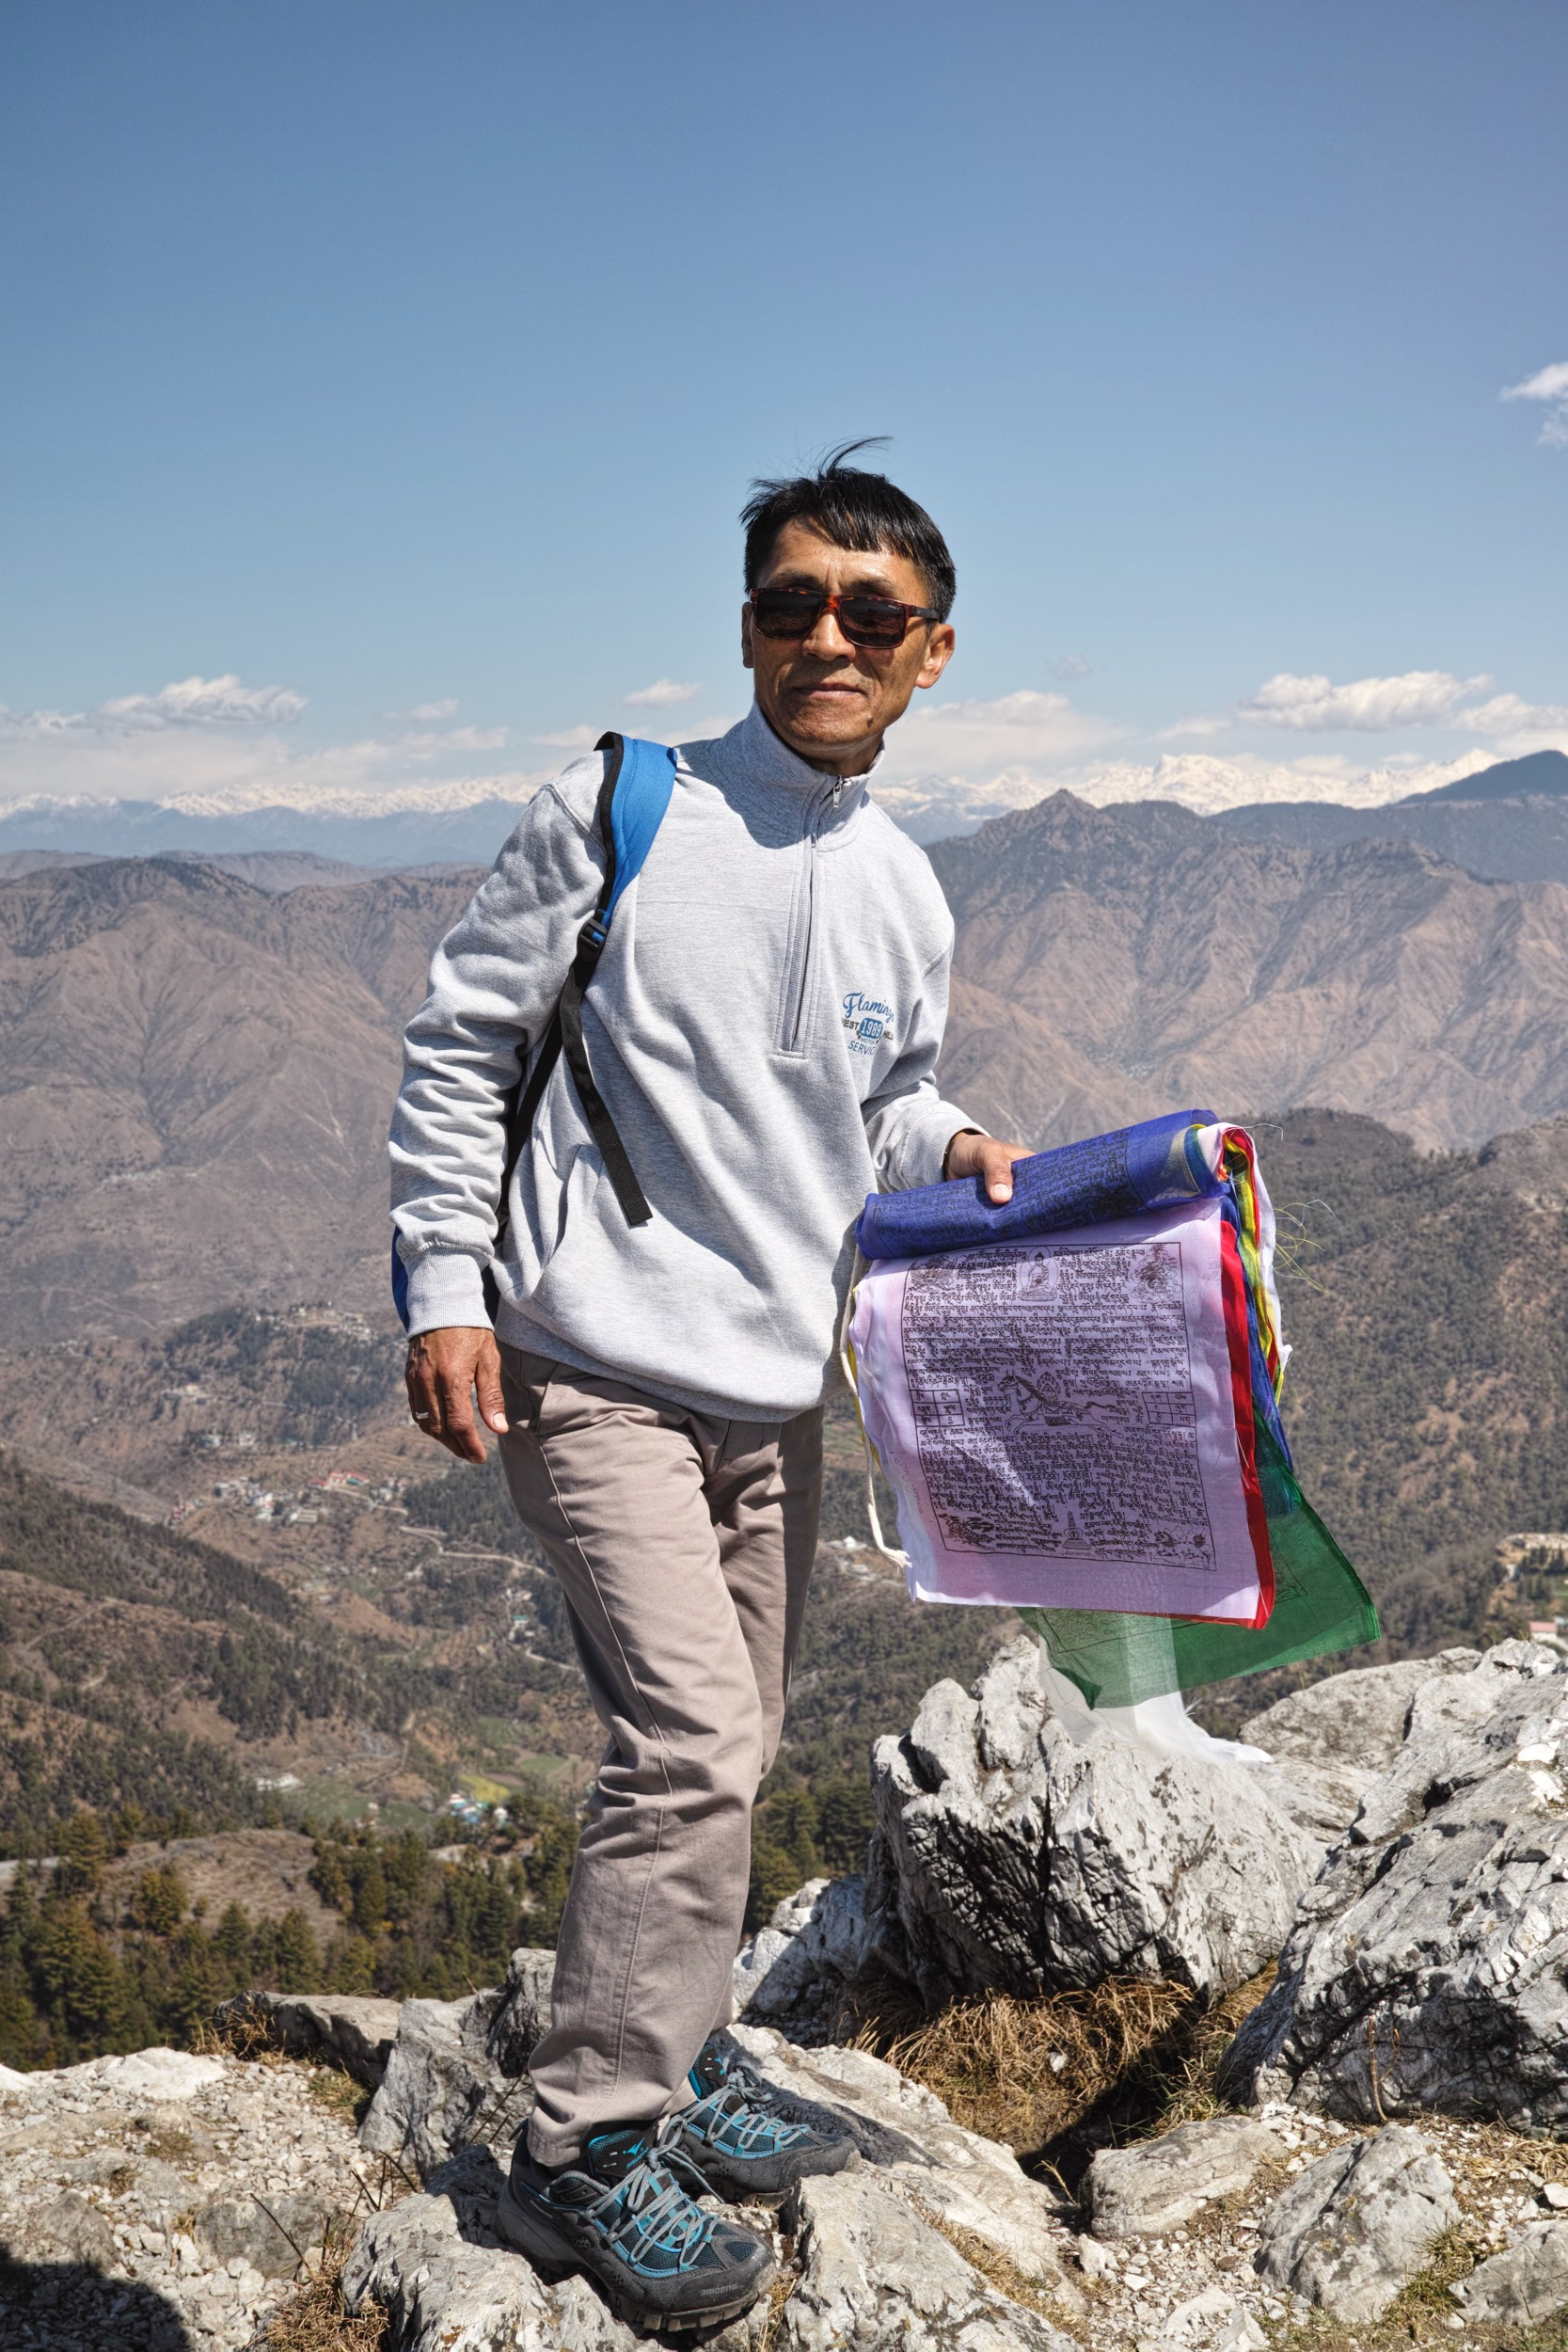 He had climbed the knoll to put up all new Tibetan prayer flags and he was not embarrassed to pose for me